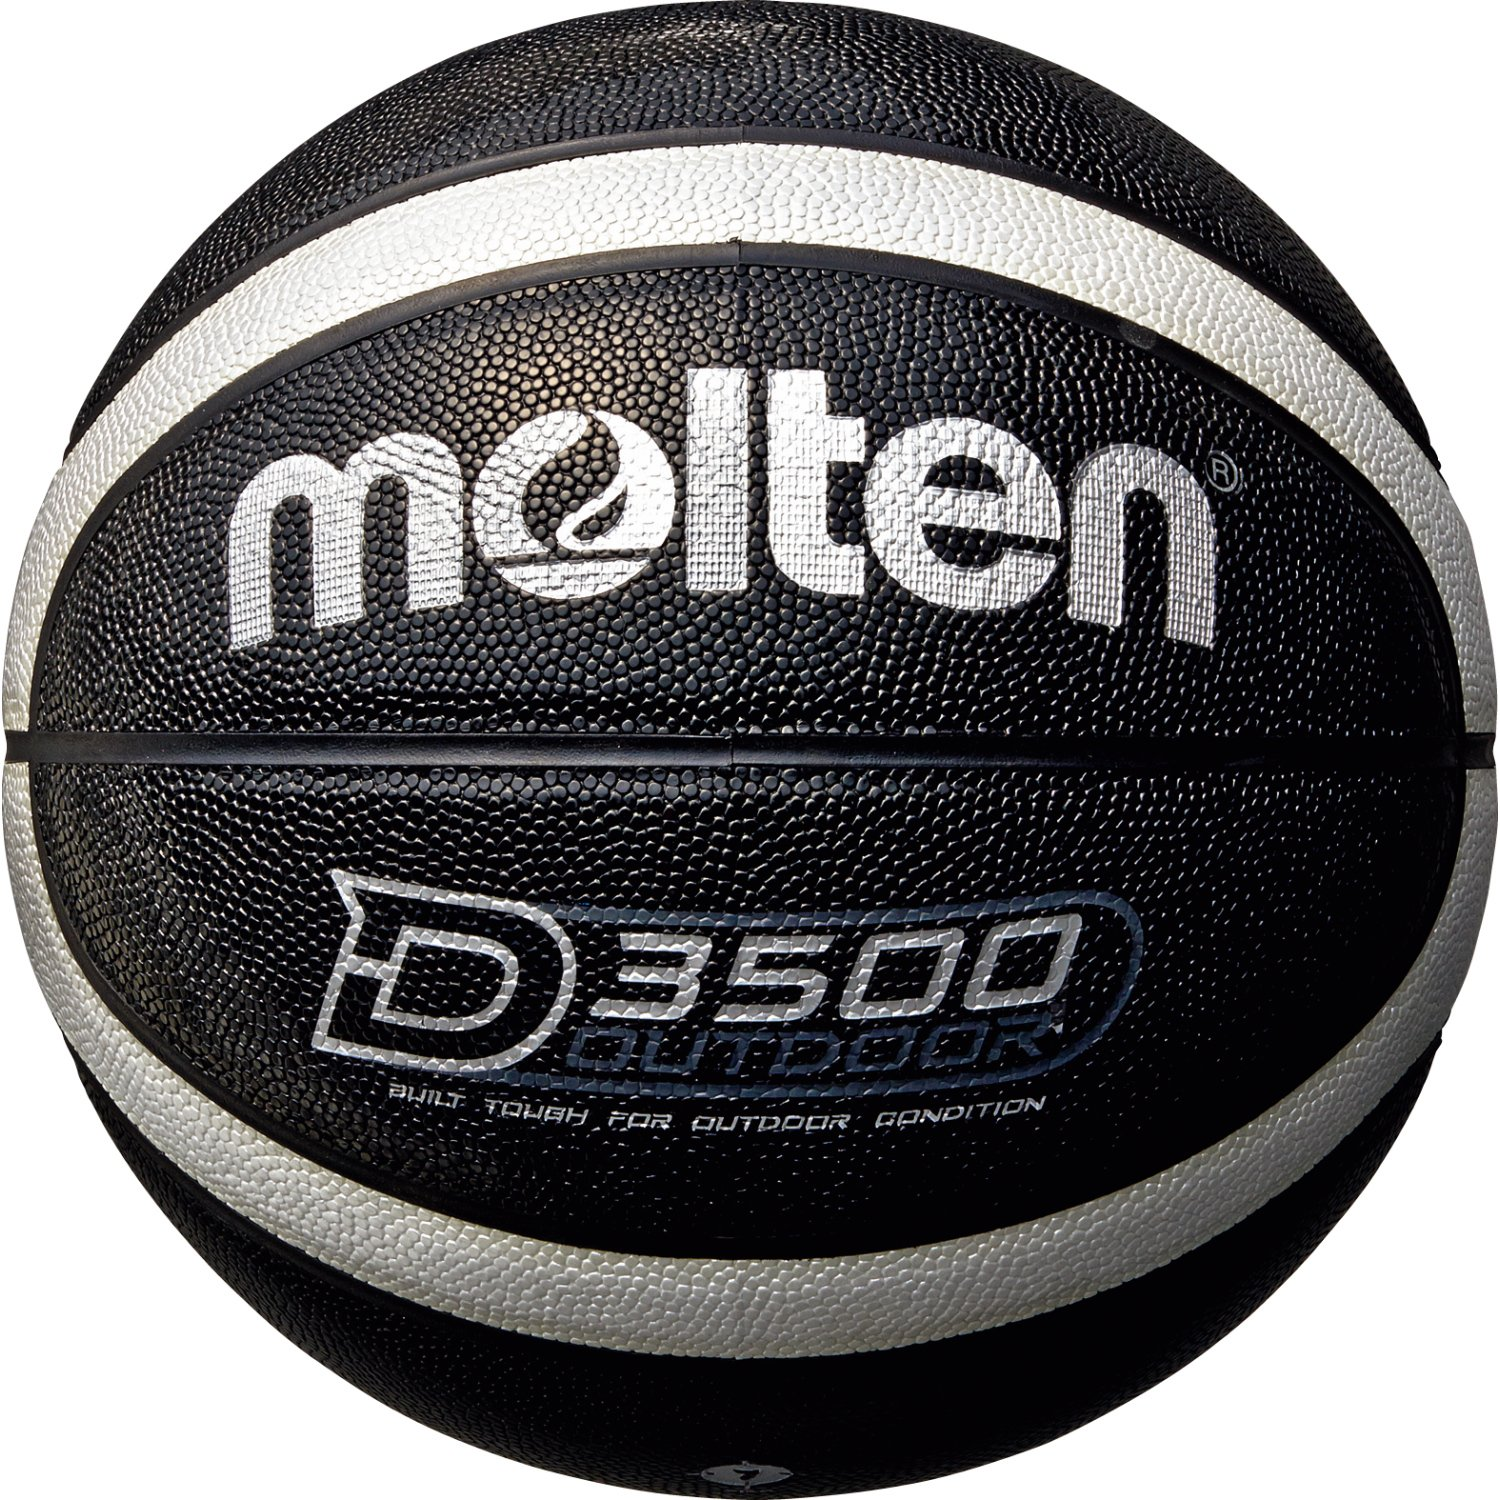 Molten Messieurs b7d3500 de KS Basketball, Noir, 7